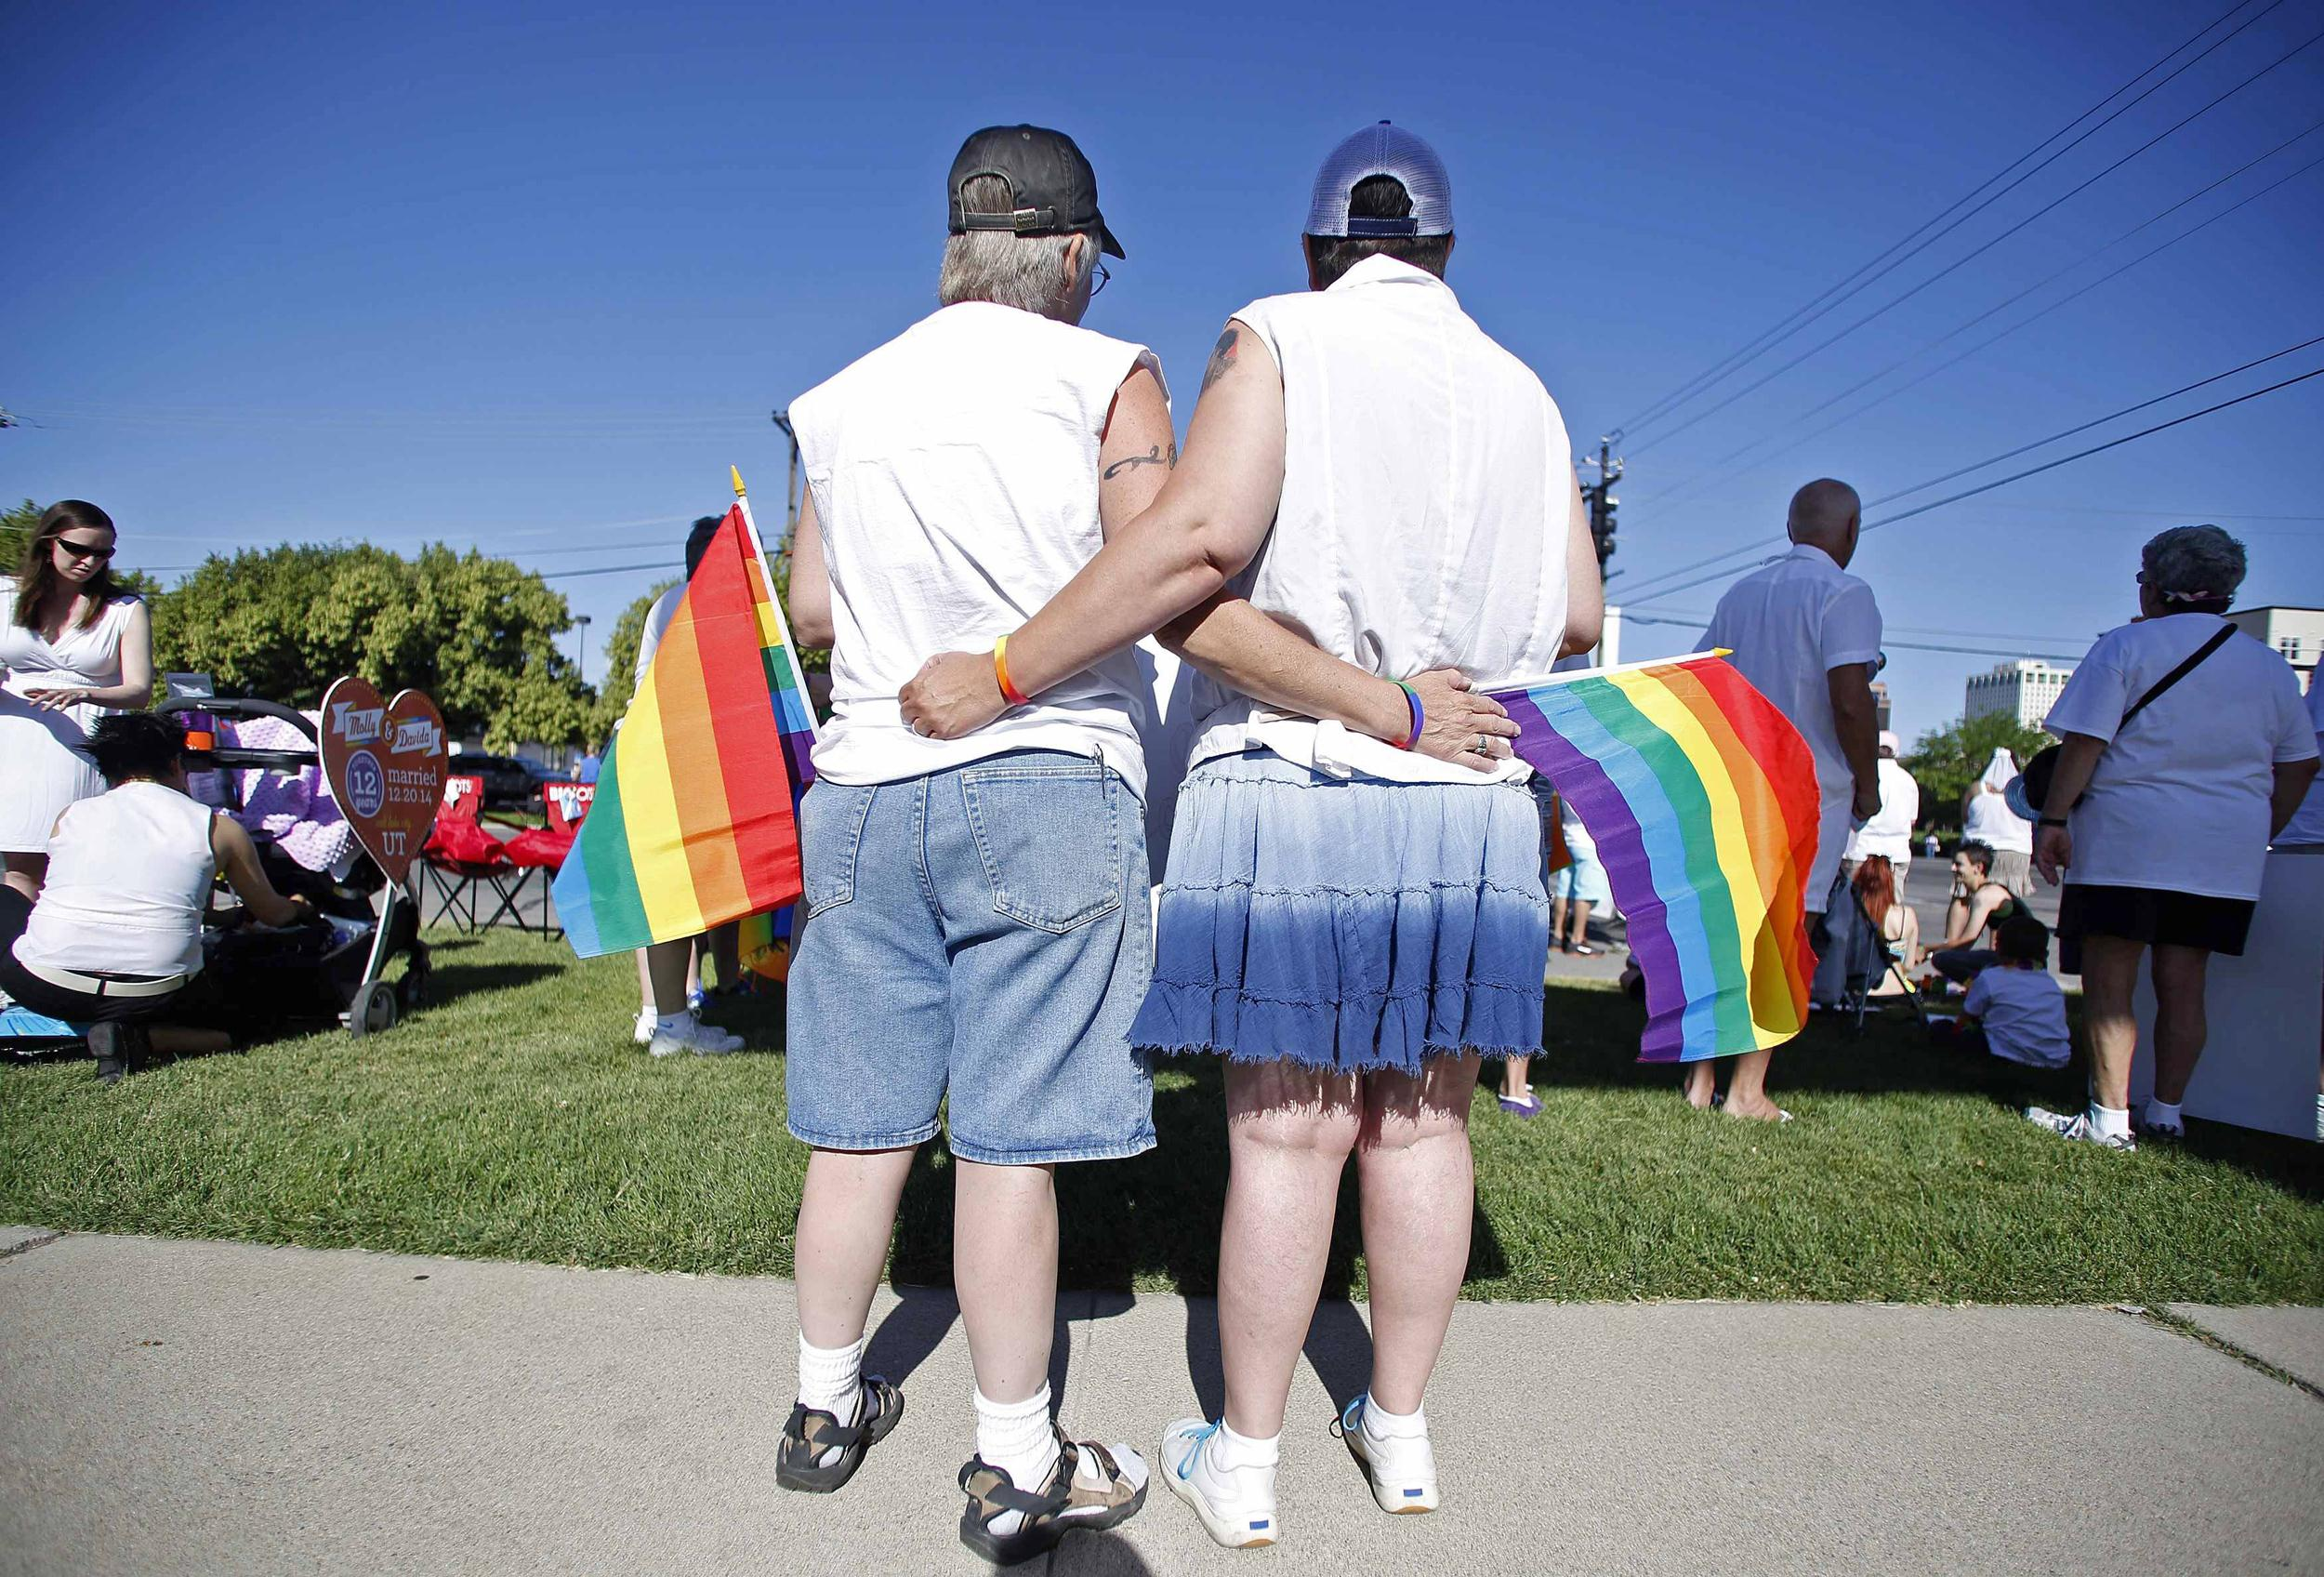 Image: Skinner and her wife Belka wait for the beginning of the Utah Pride Parade in Salt Lake City